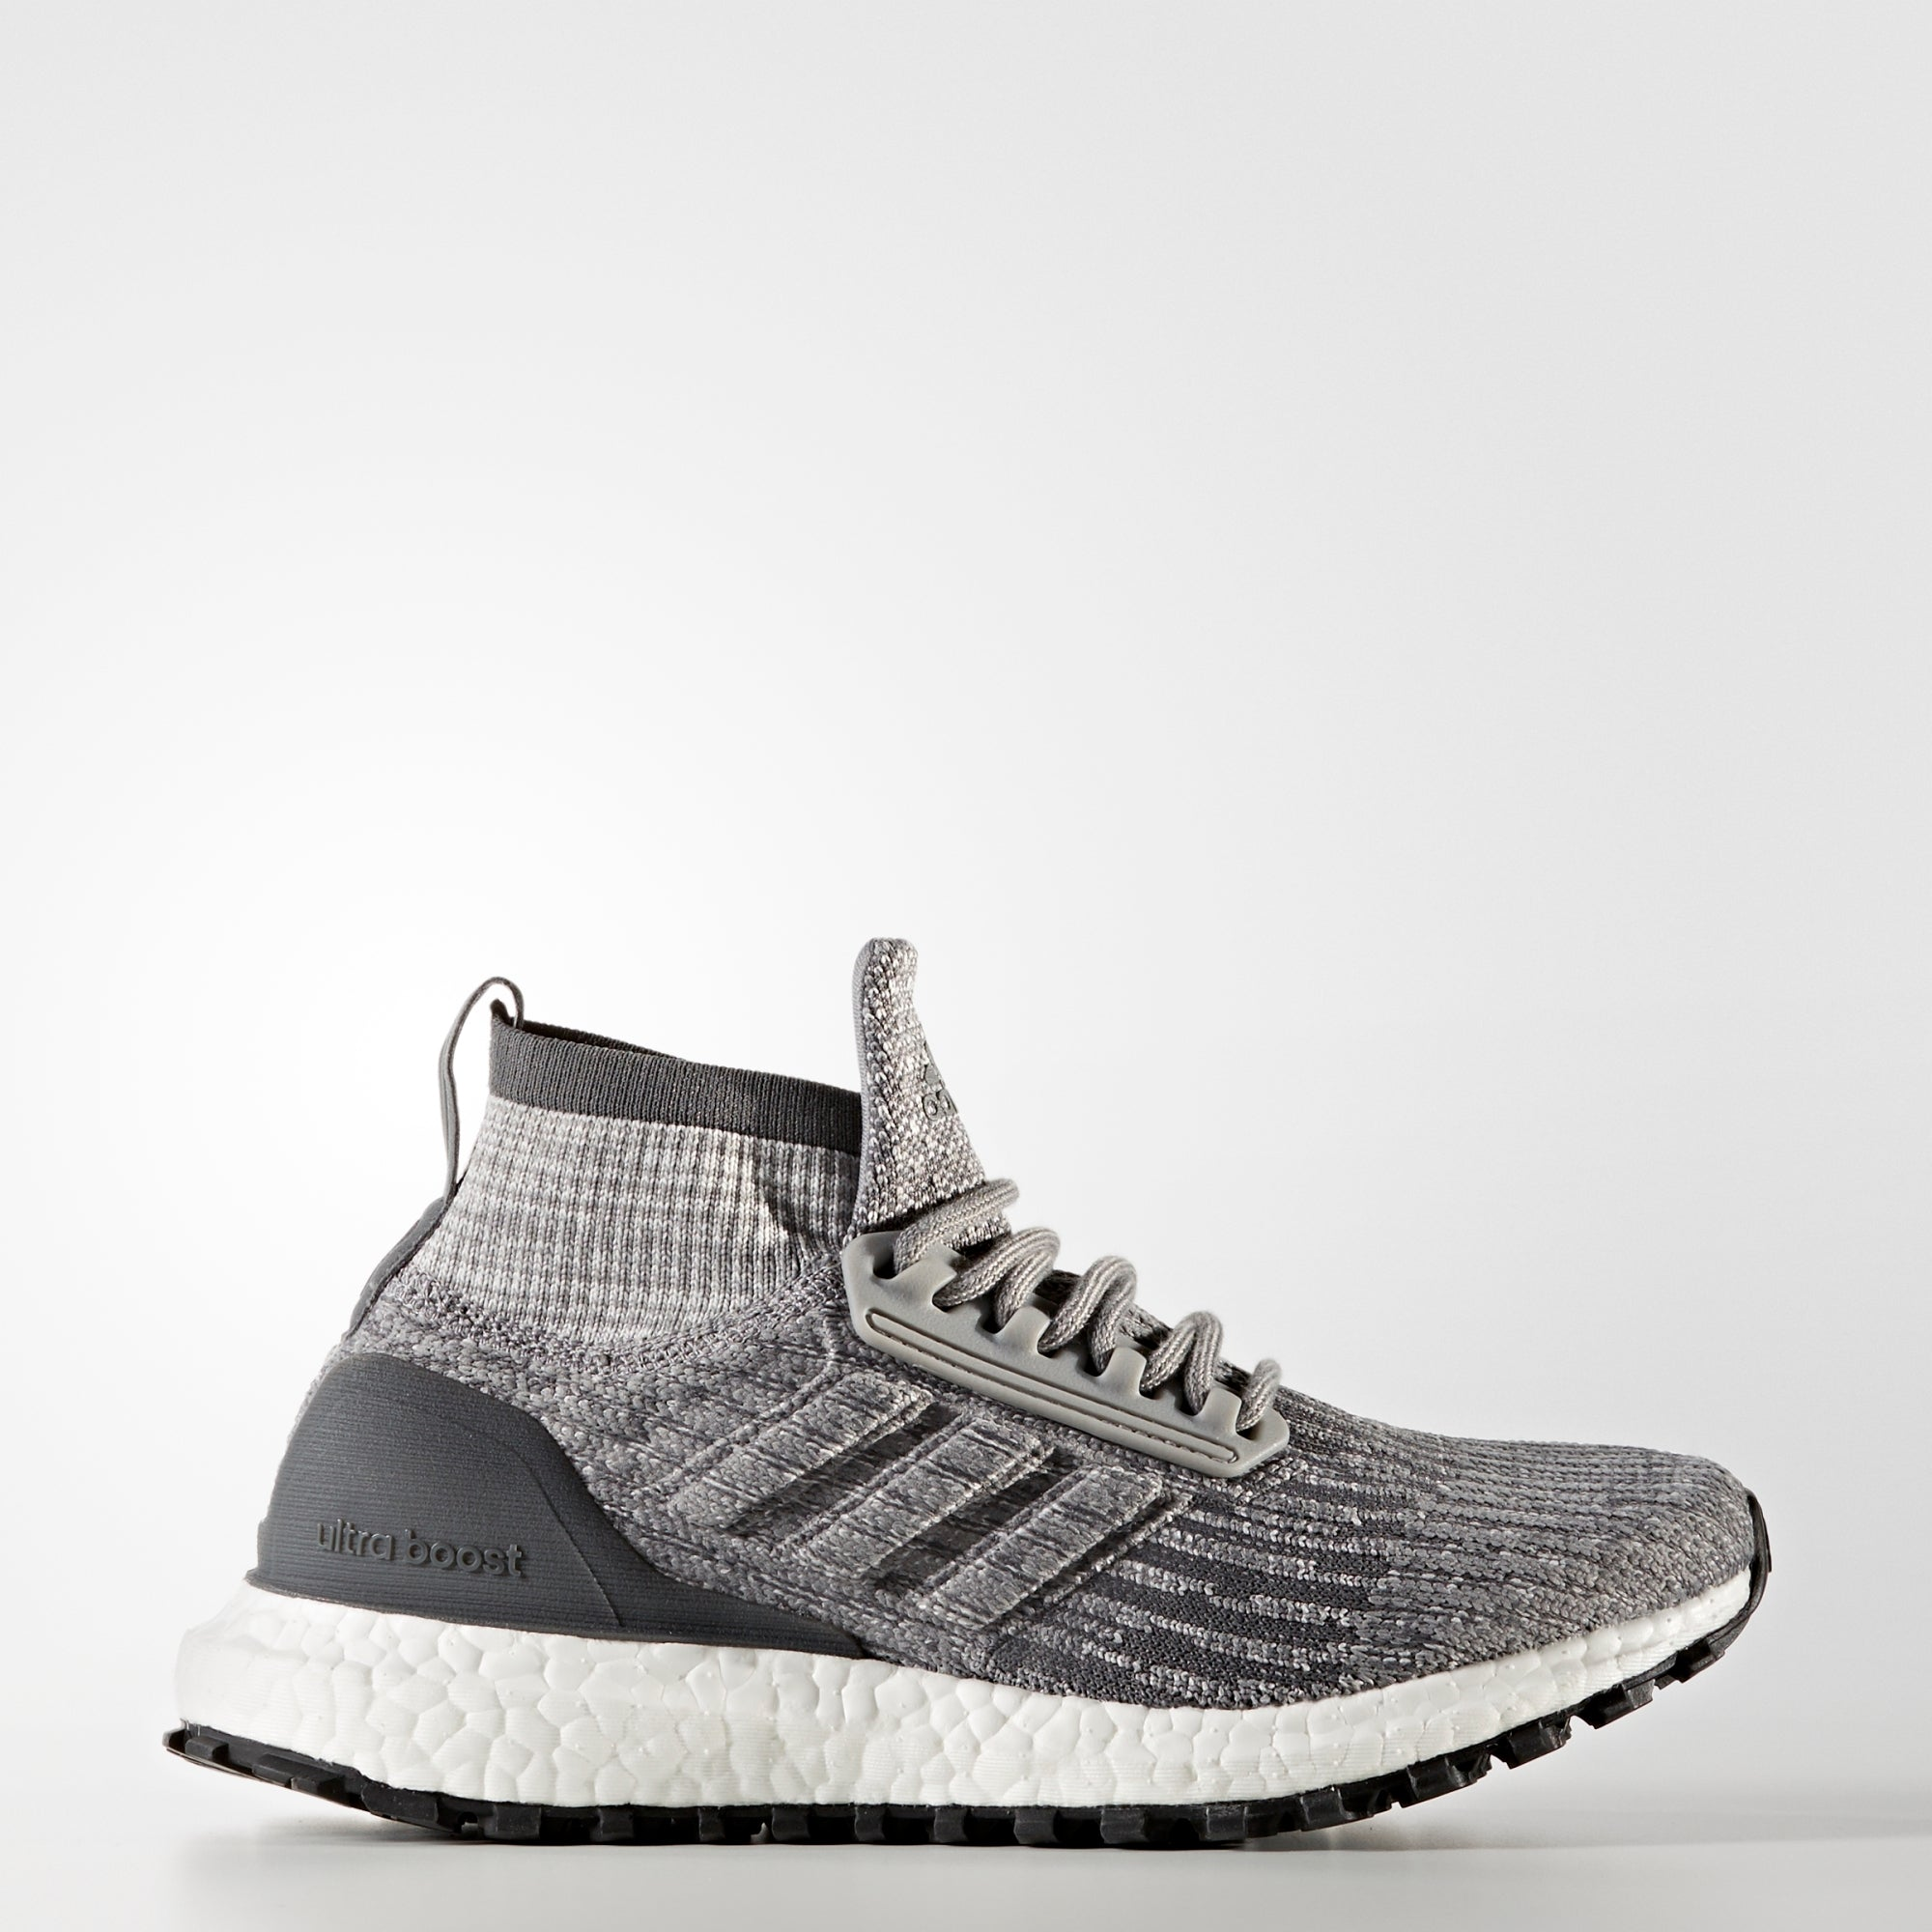 9cddaf7c49ff6 Kid s adidas Running Ultraboost Shoes Gray